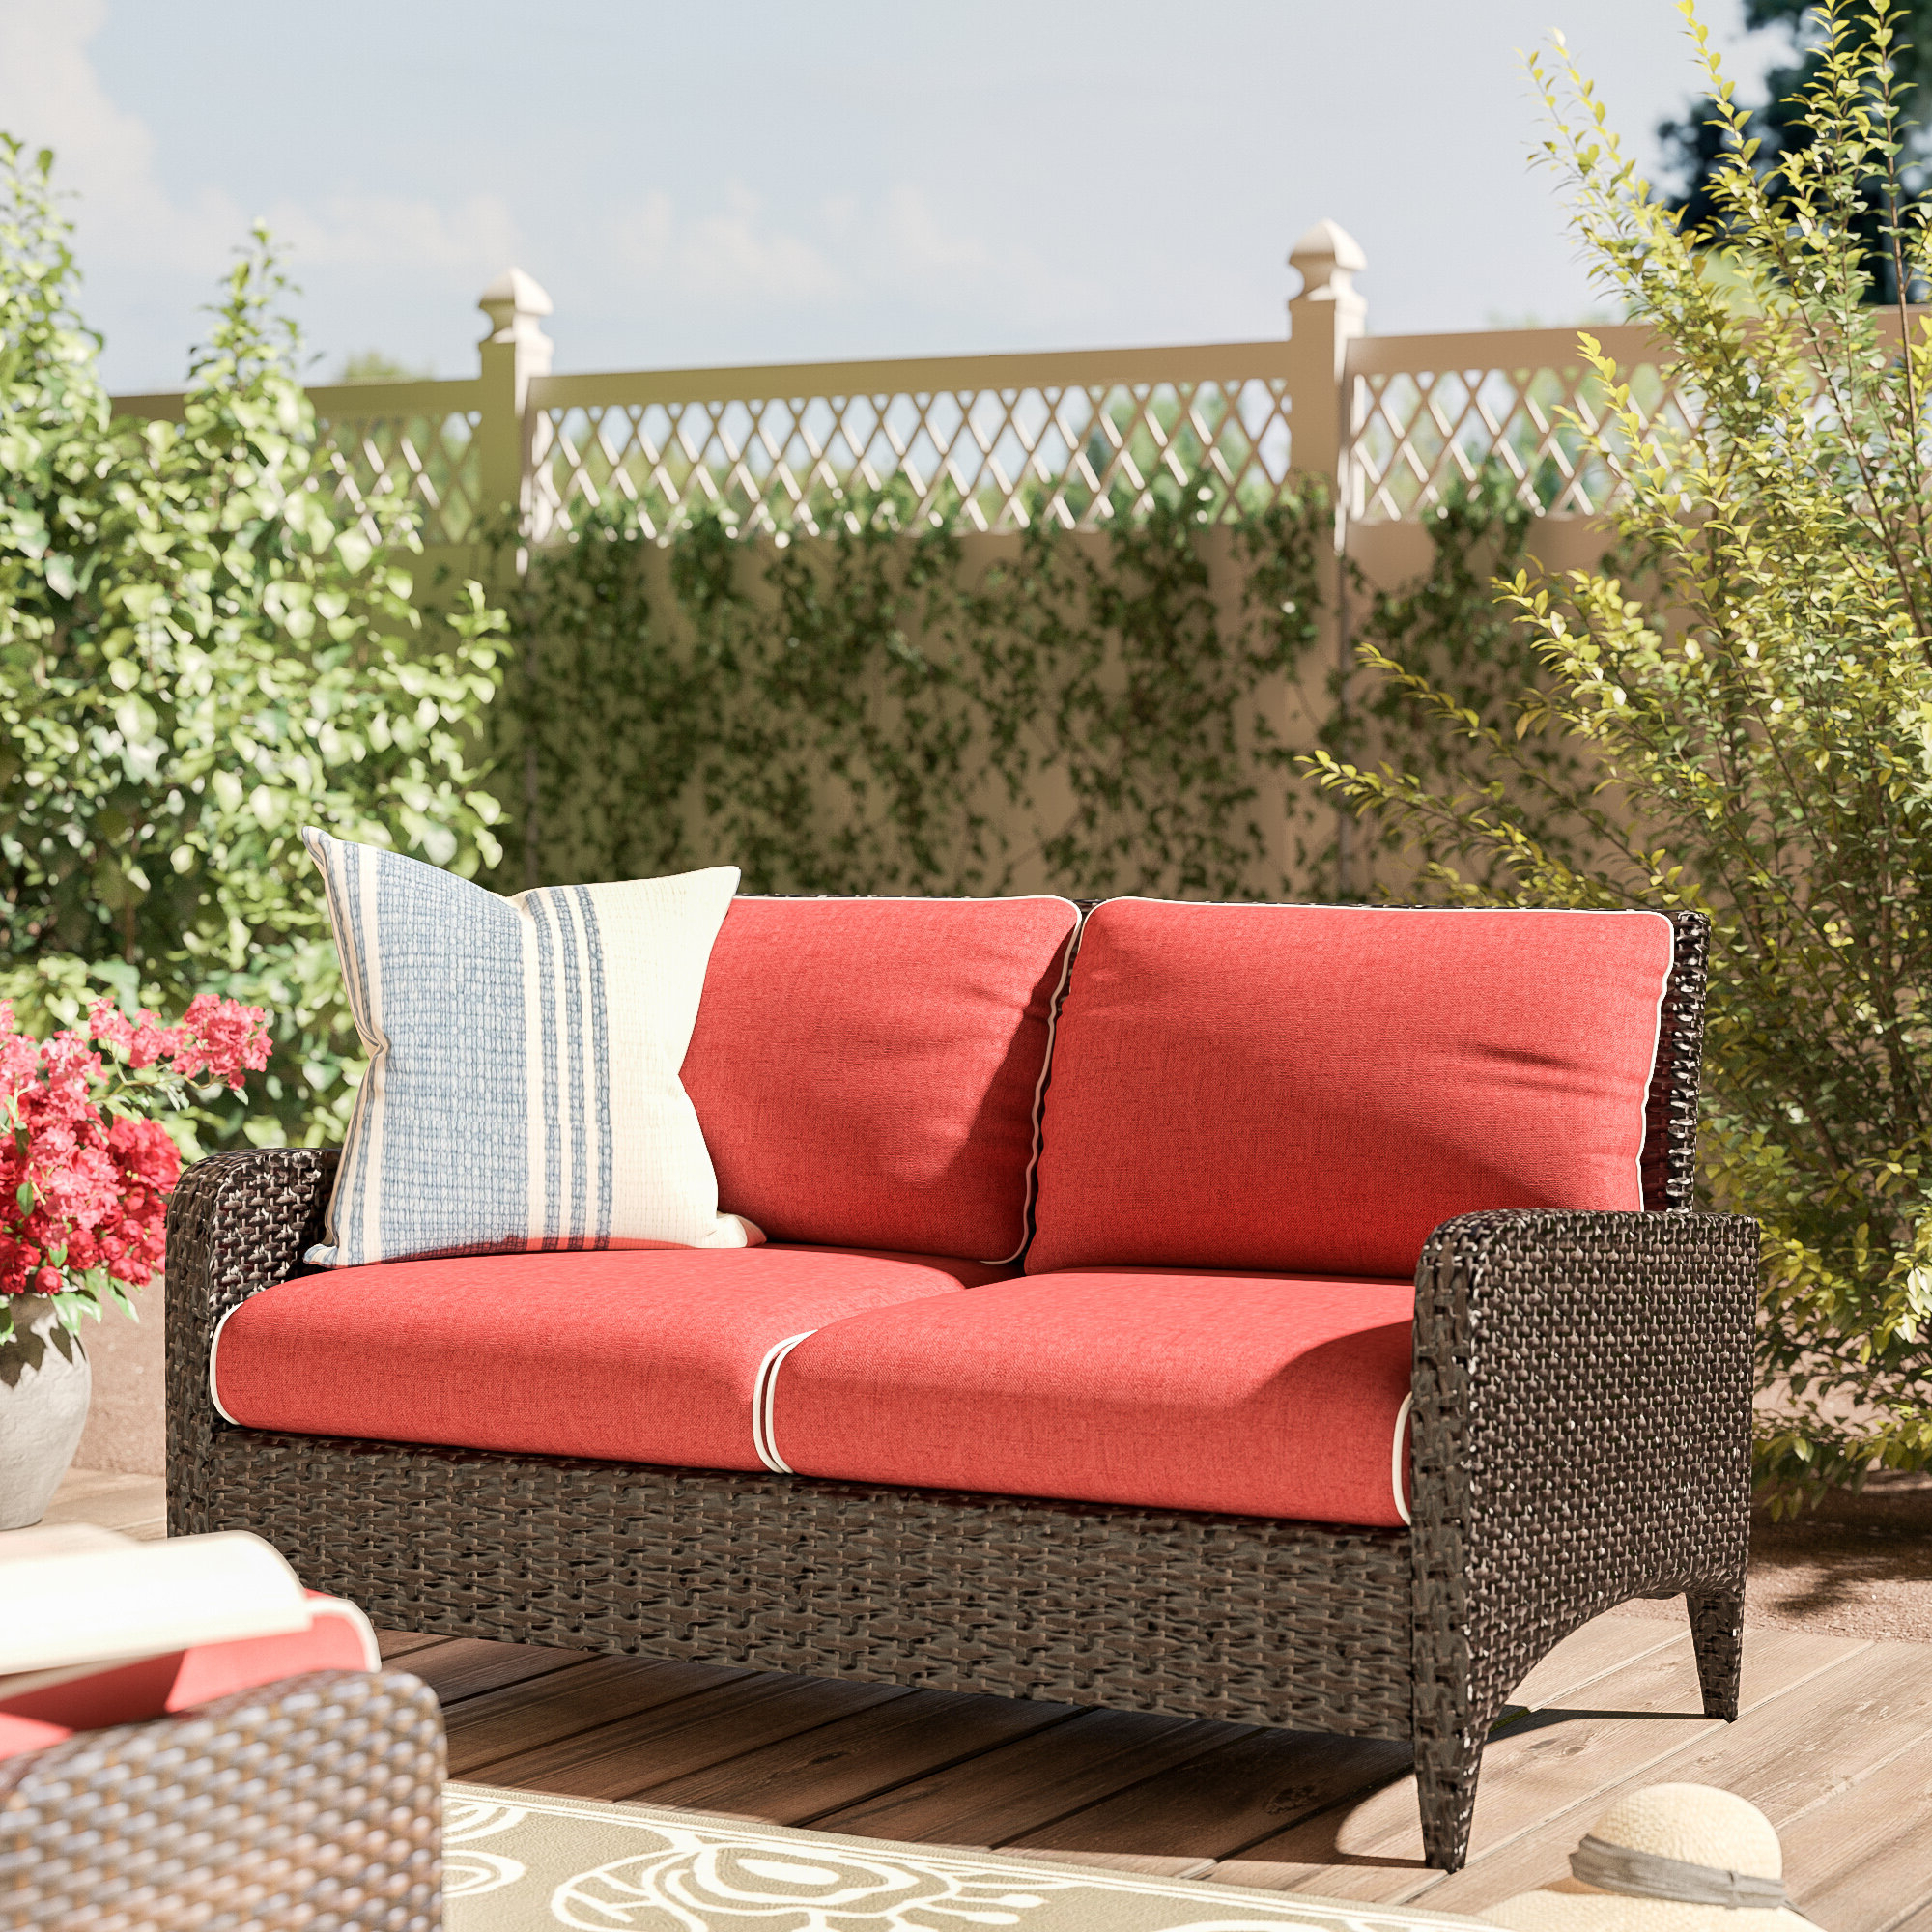 First Outdoor Wicker Loveseat (View 15 of 25)